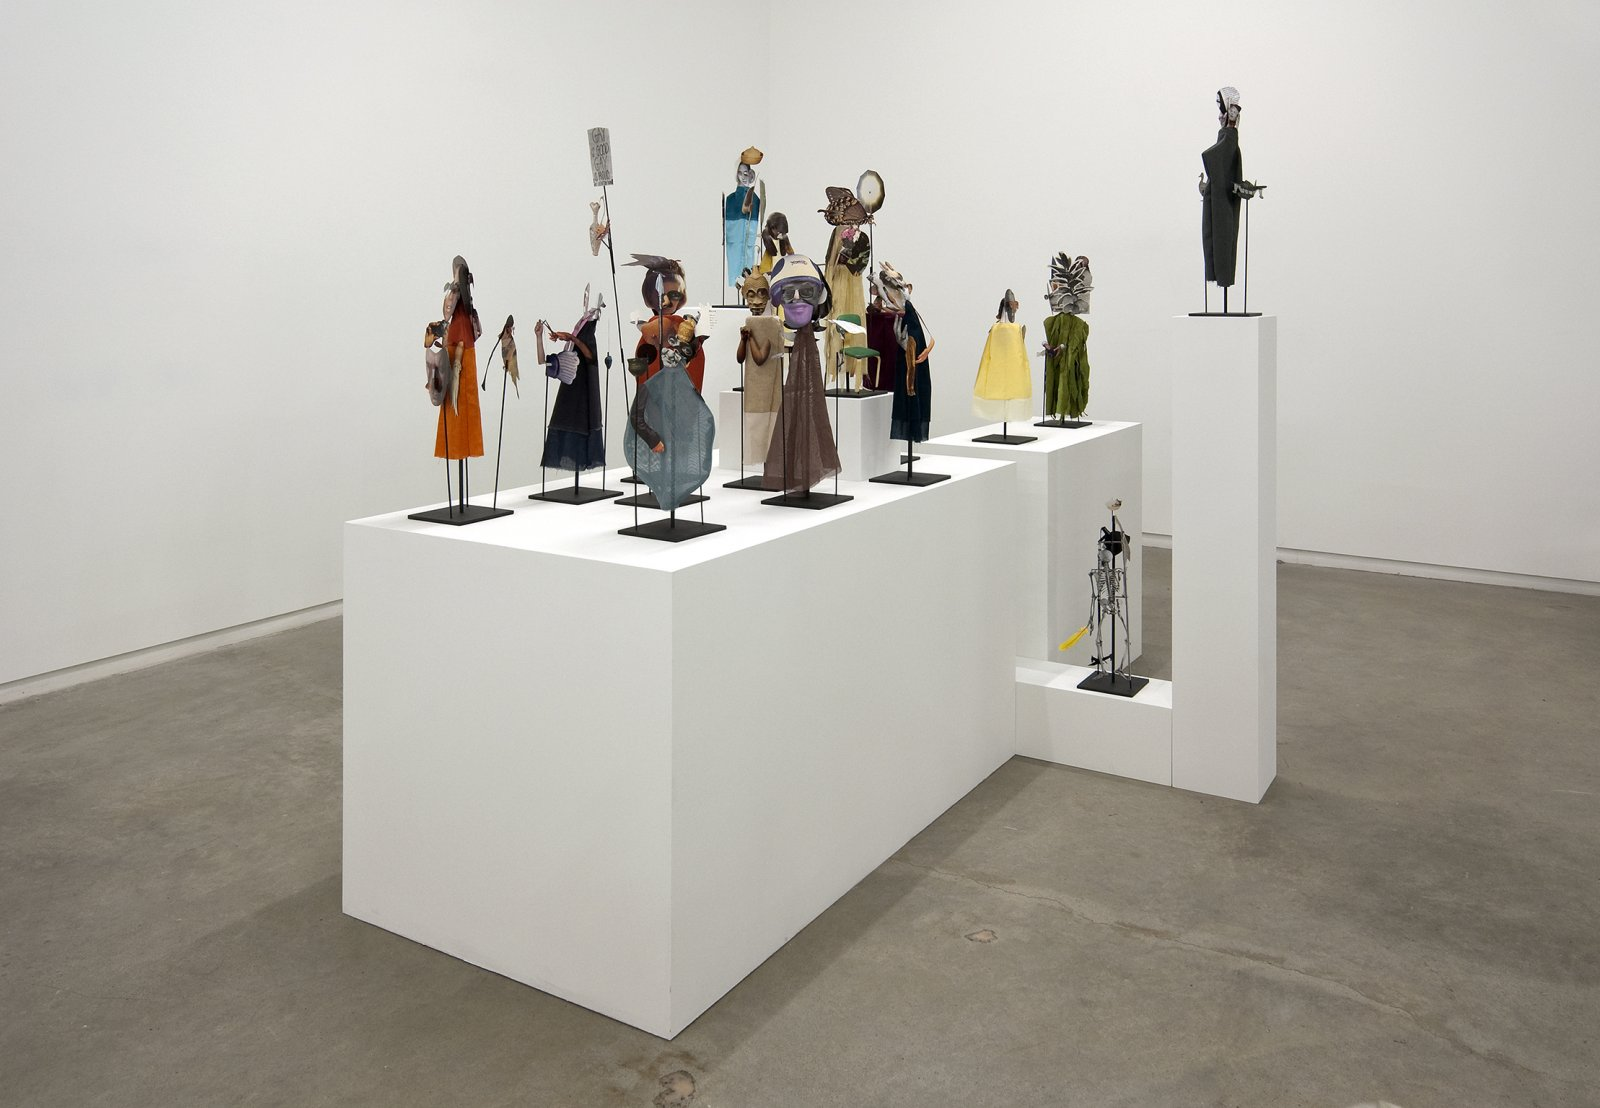 Geoffrey Farmer, installation view, The Surgeon and the Photographer, Catriona Jeffries, 2010 by Geoffrey Farmer